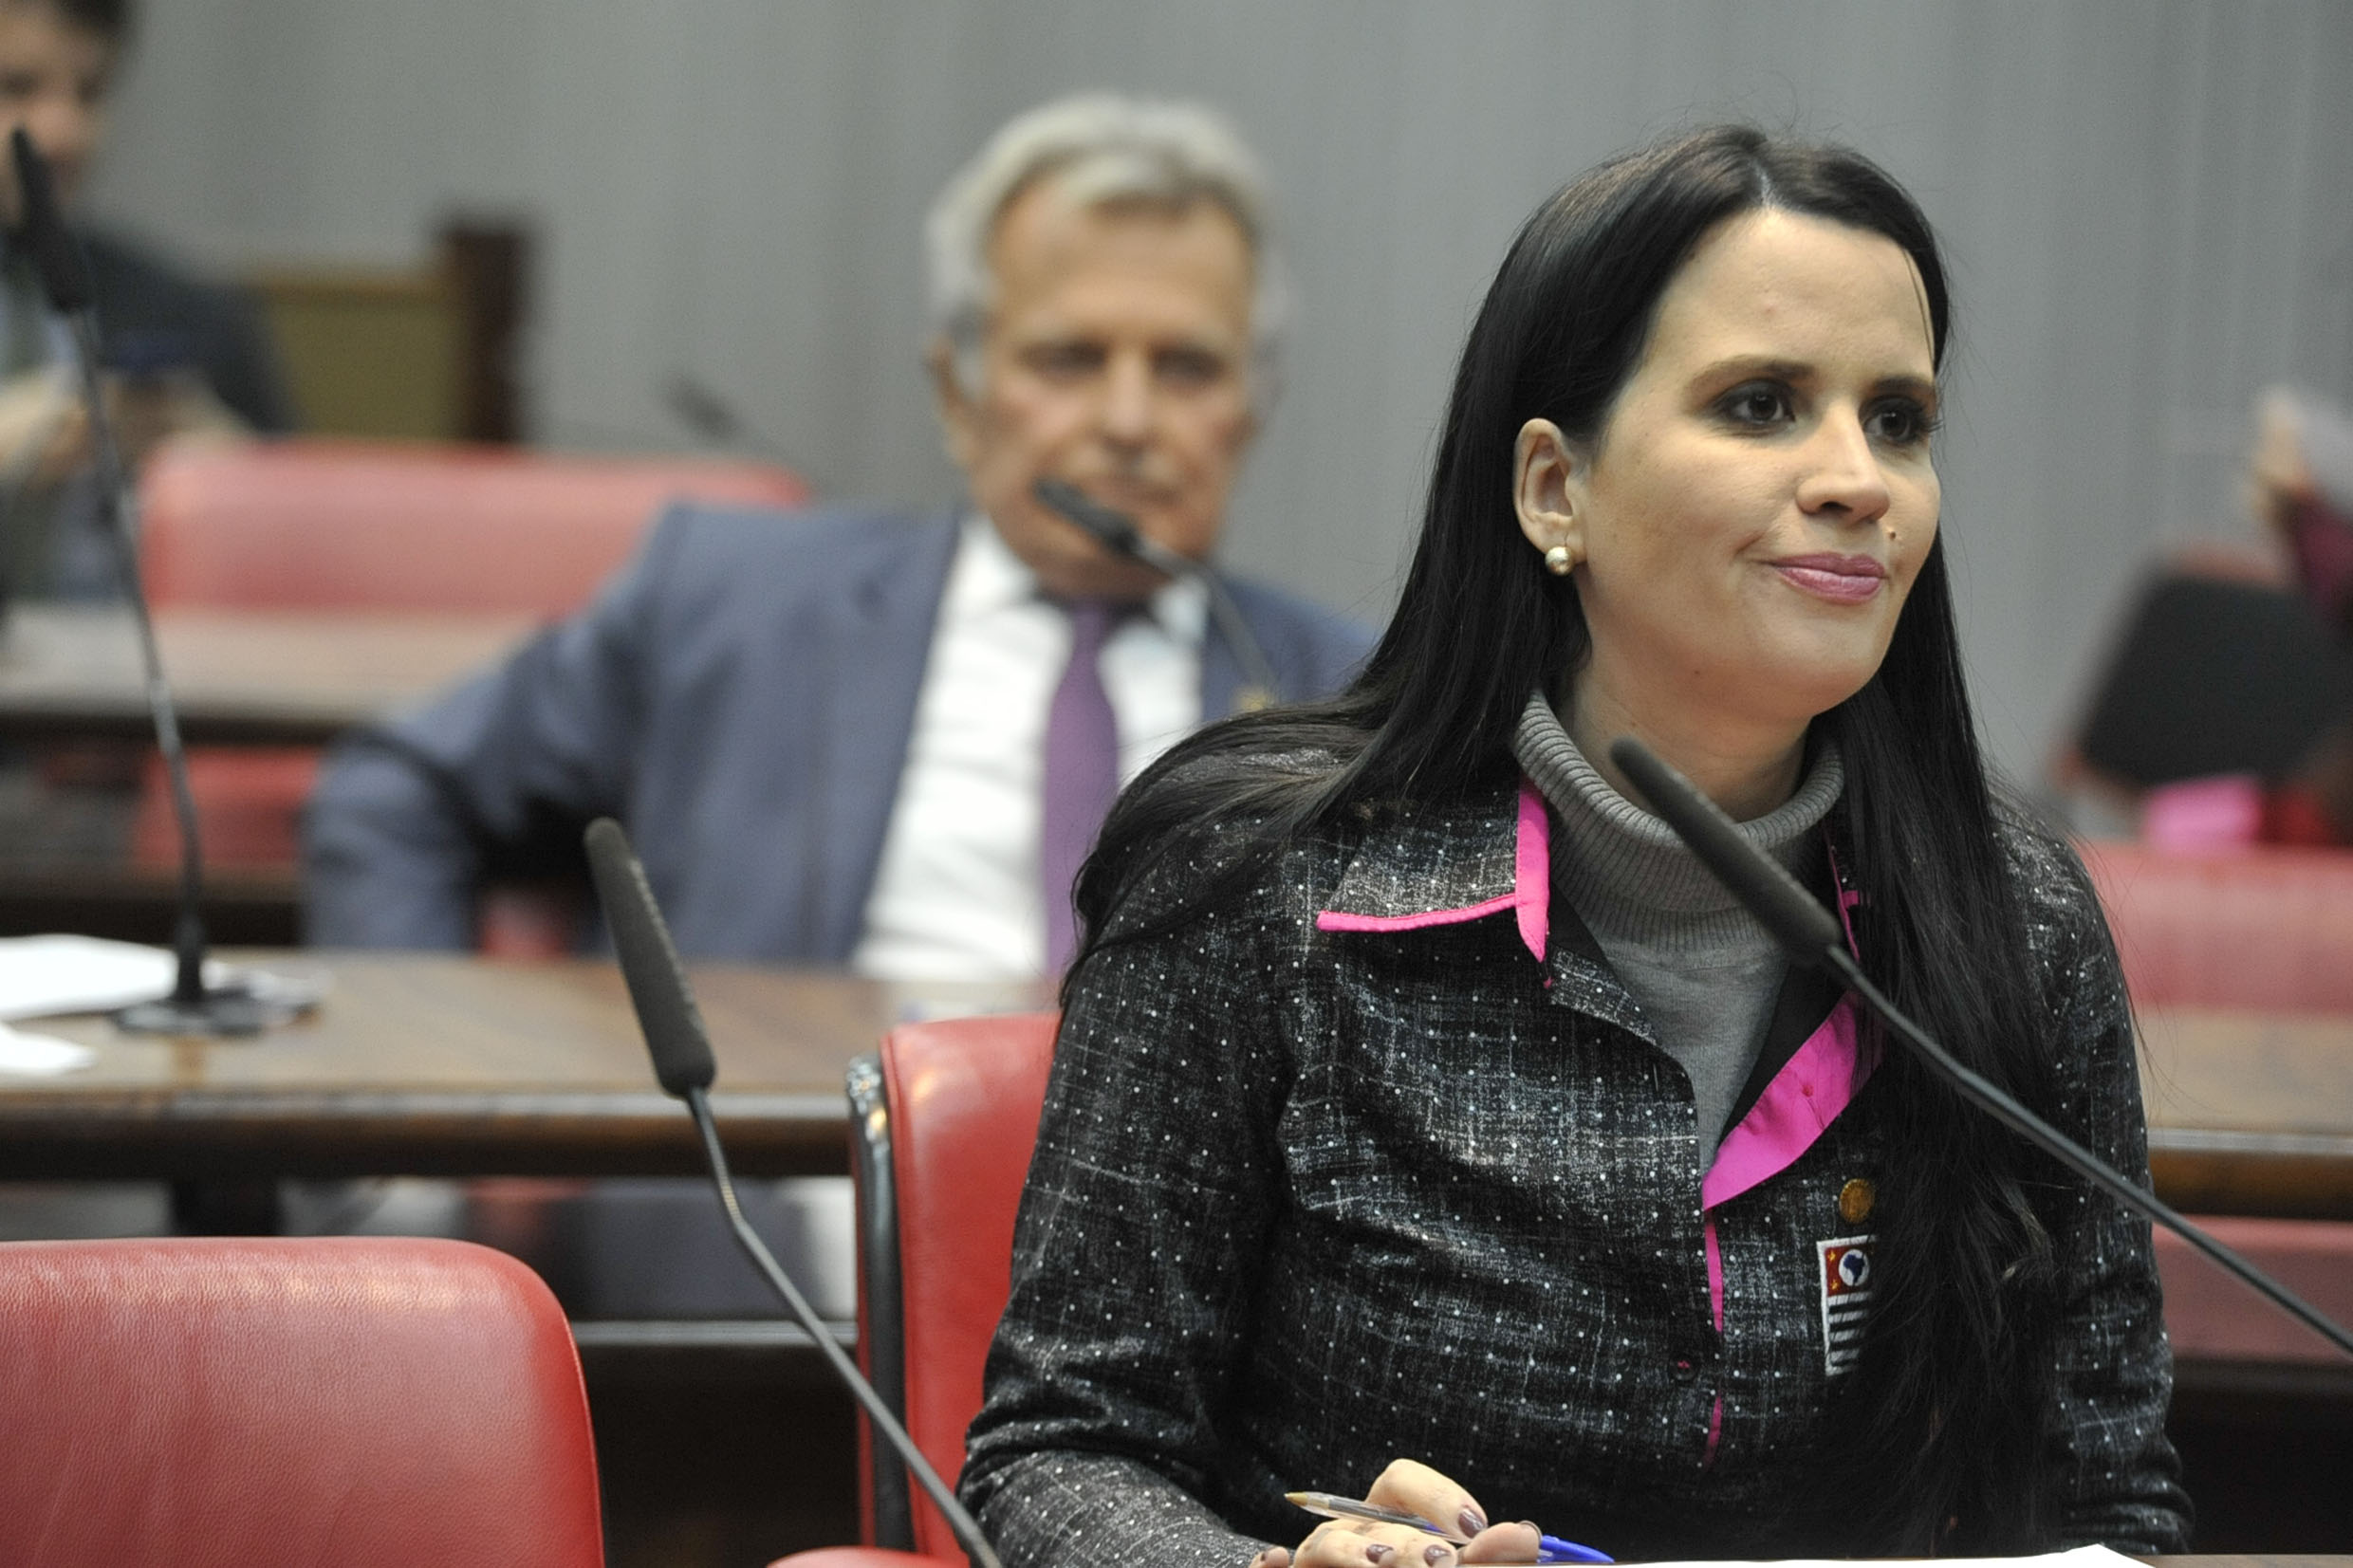 Ataide Teruel e Leticia Aguiar<a style='float:right' href='https://www3.al.sp.gov.br/repositorio/noticia/N-06-2019/fg235670.jpg' target=_blank><img src='/_img/material-file-download-white.png' width='14px' alt='Clique para baixar a imagem'></a>